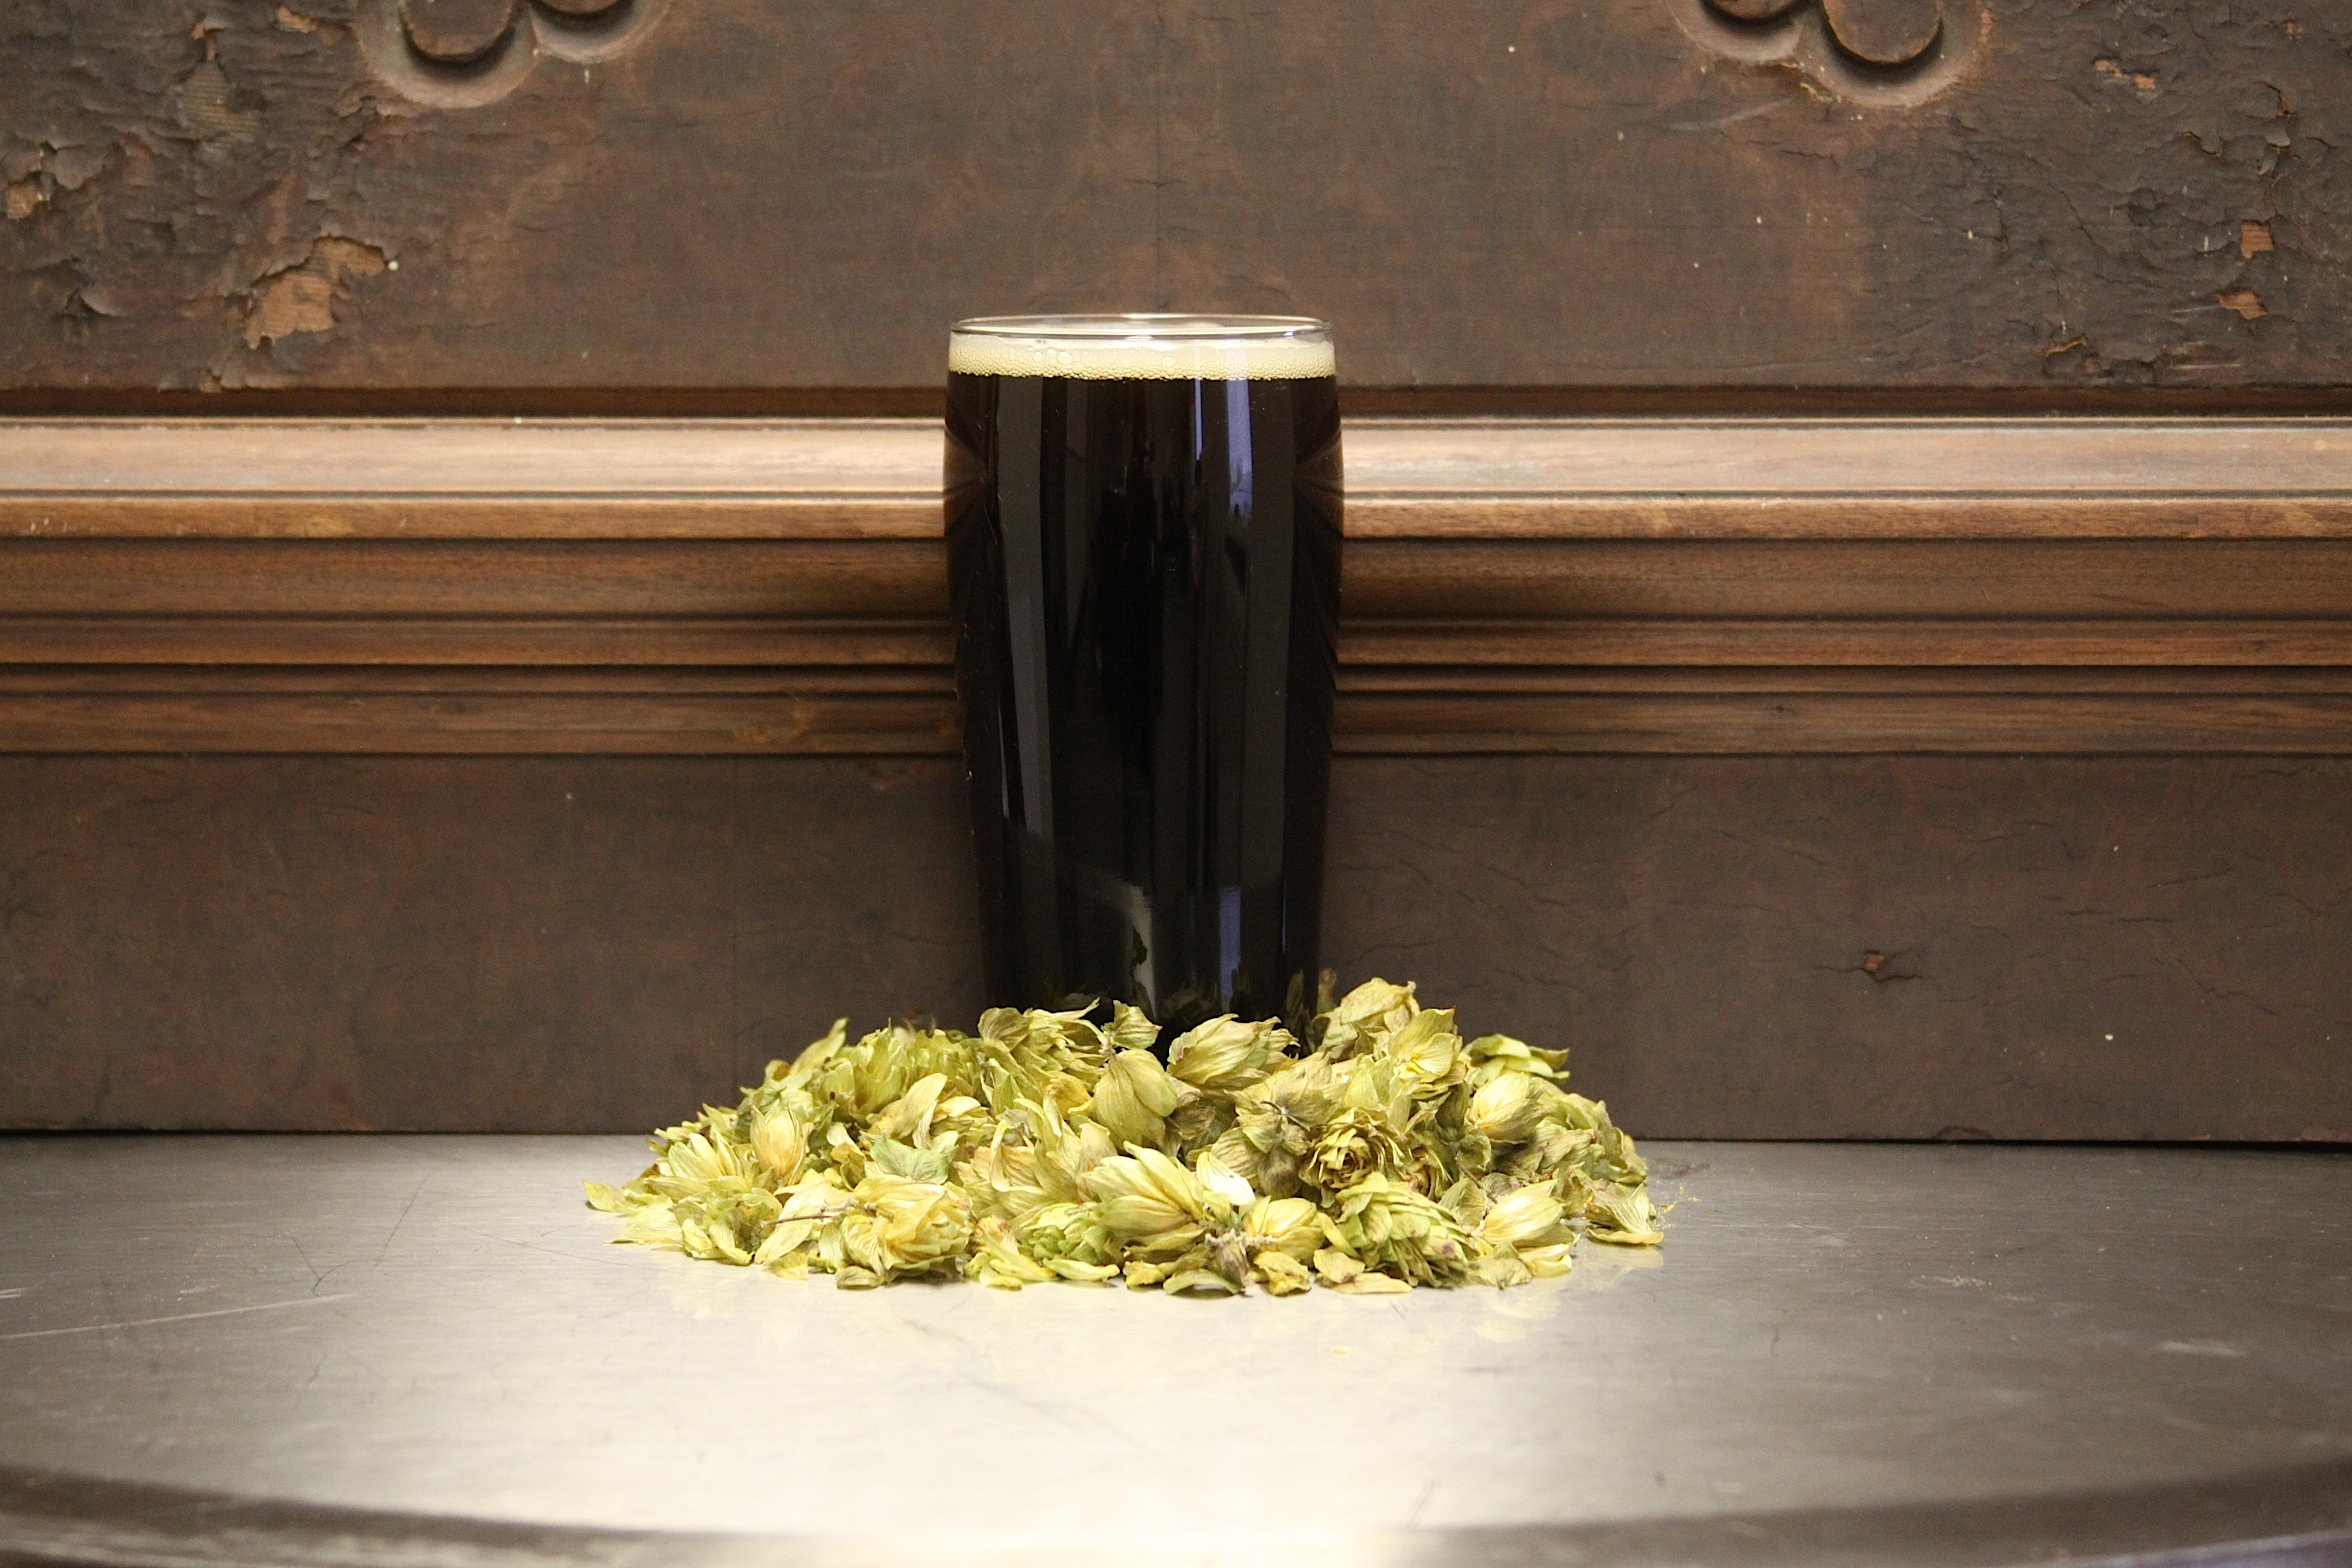 * Our Hurst Haus Brown is named after one of our brewers, Steve Hurst, who is a mastermind of beer recipes. We have decided to brew this as a winter beer, but may have to keep it around for a little longer. Stay tuned.